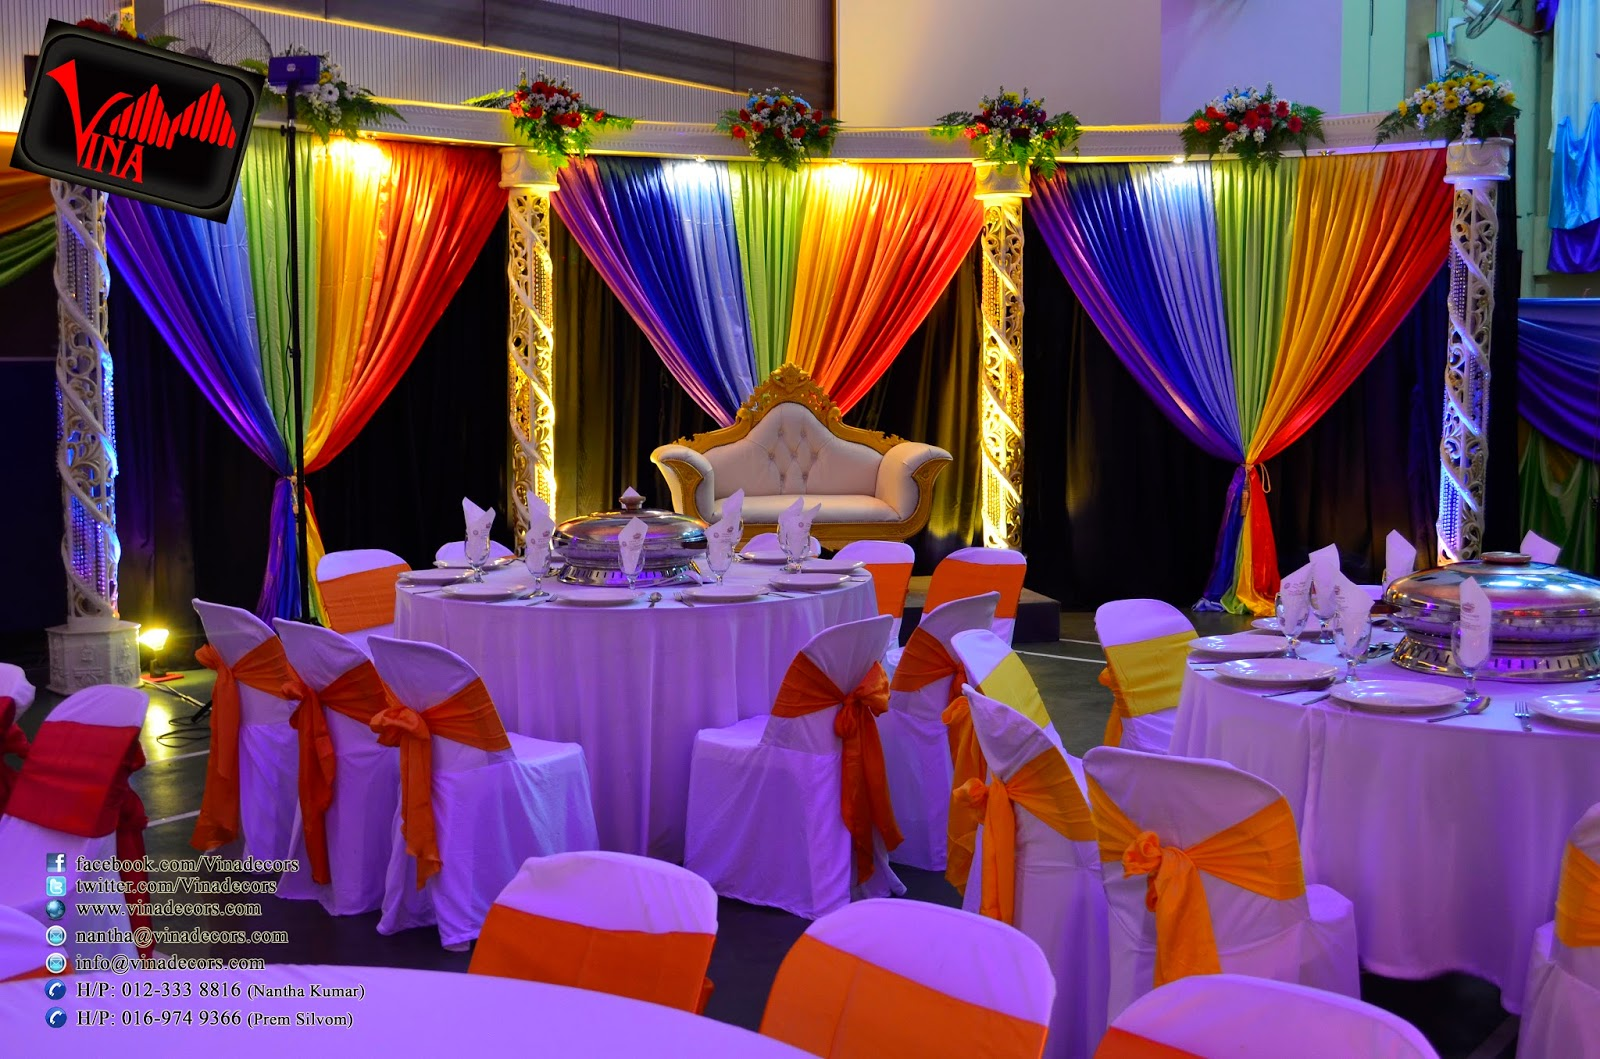 Vina canopy decor rainbow color concept wedding dinner for Wedding decoration images